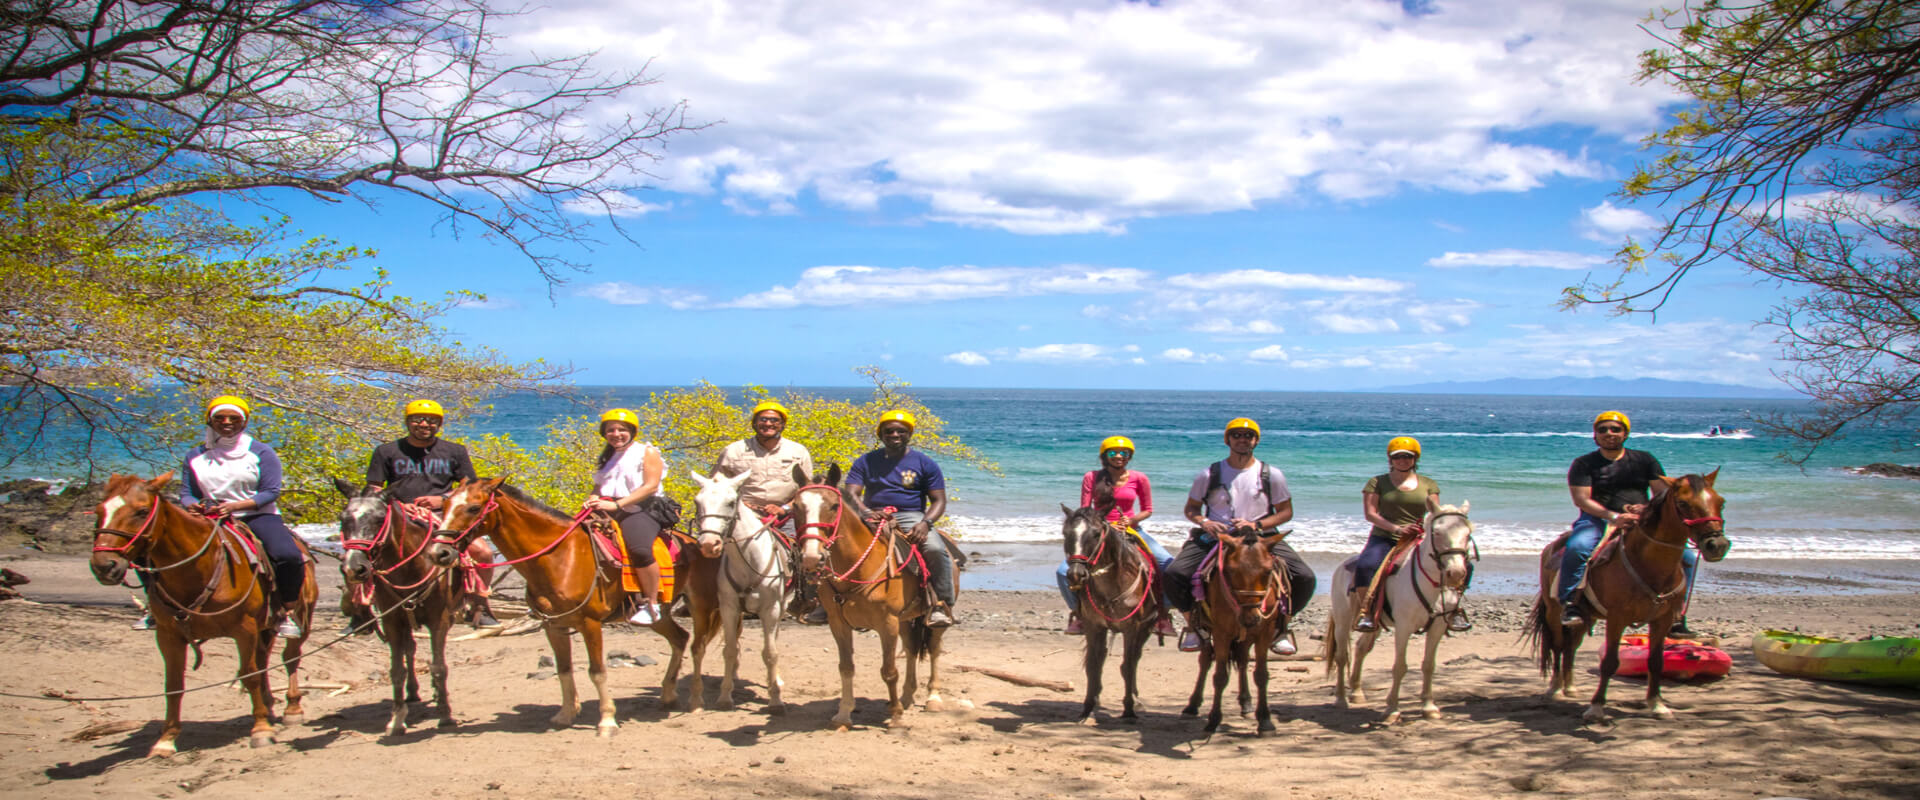 Cabalgata en Diamante Adventure Park | Costa Rica Jade Tours